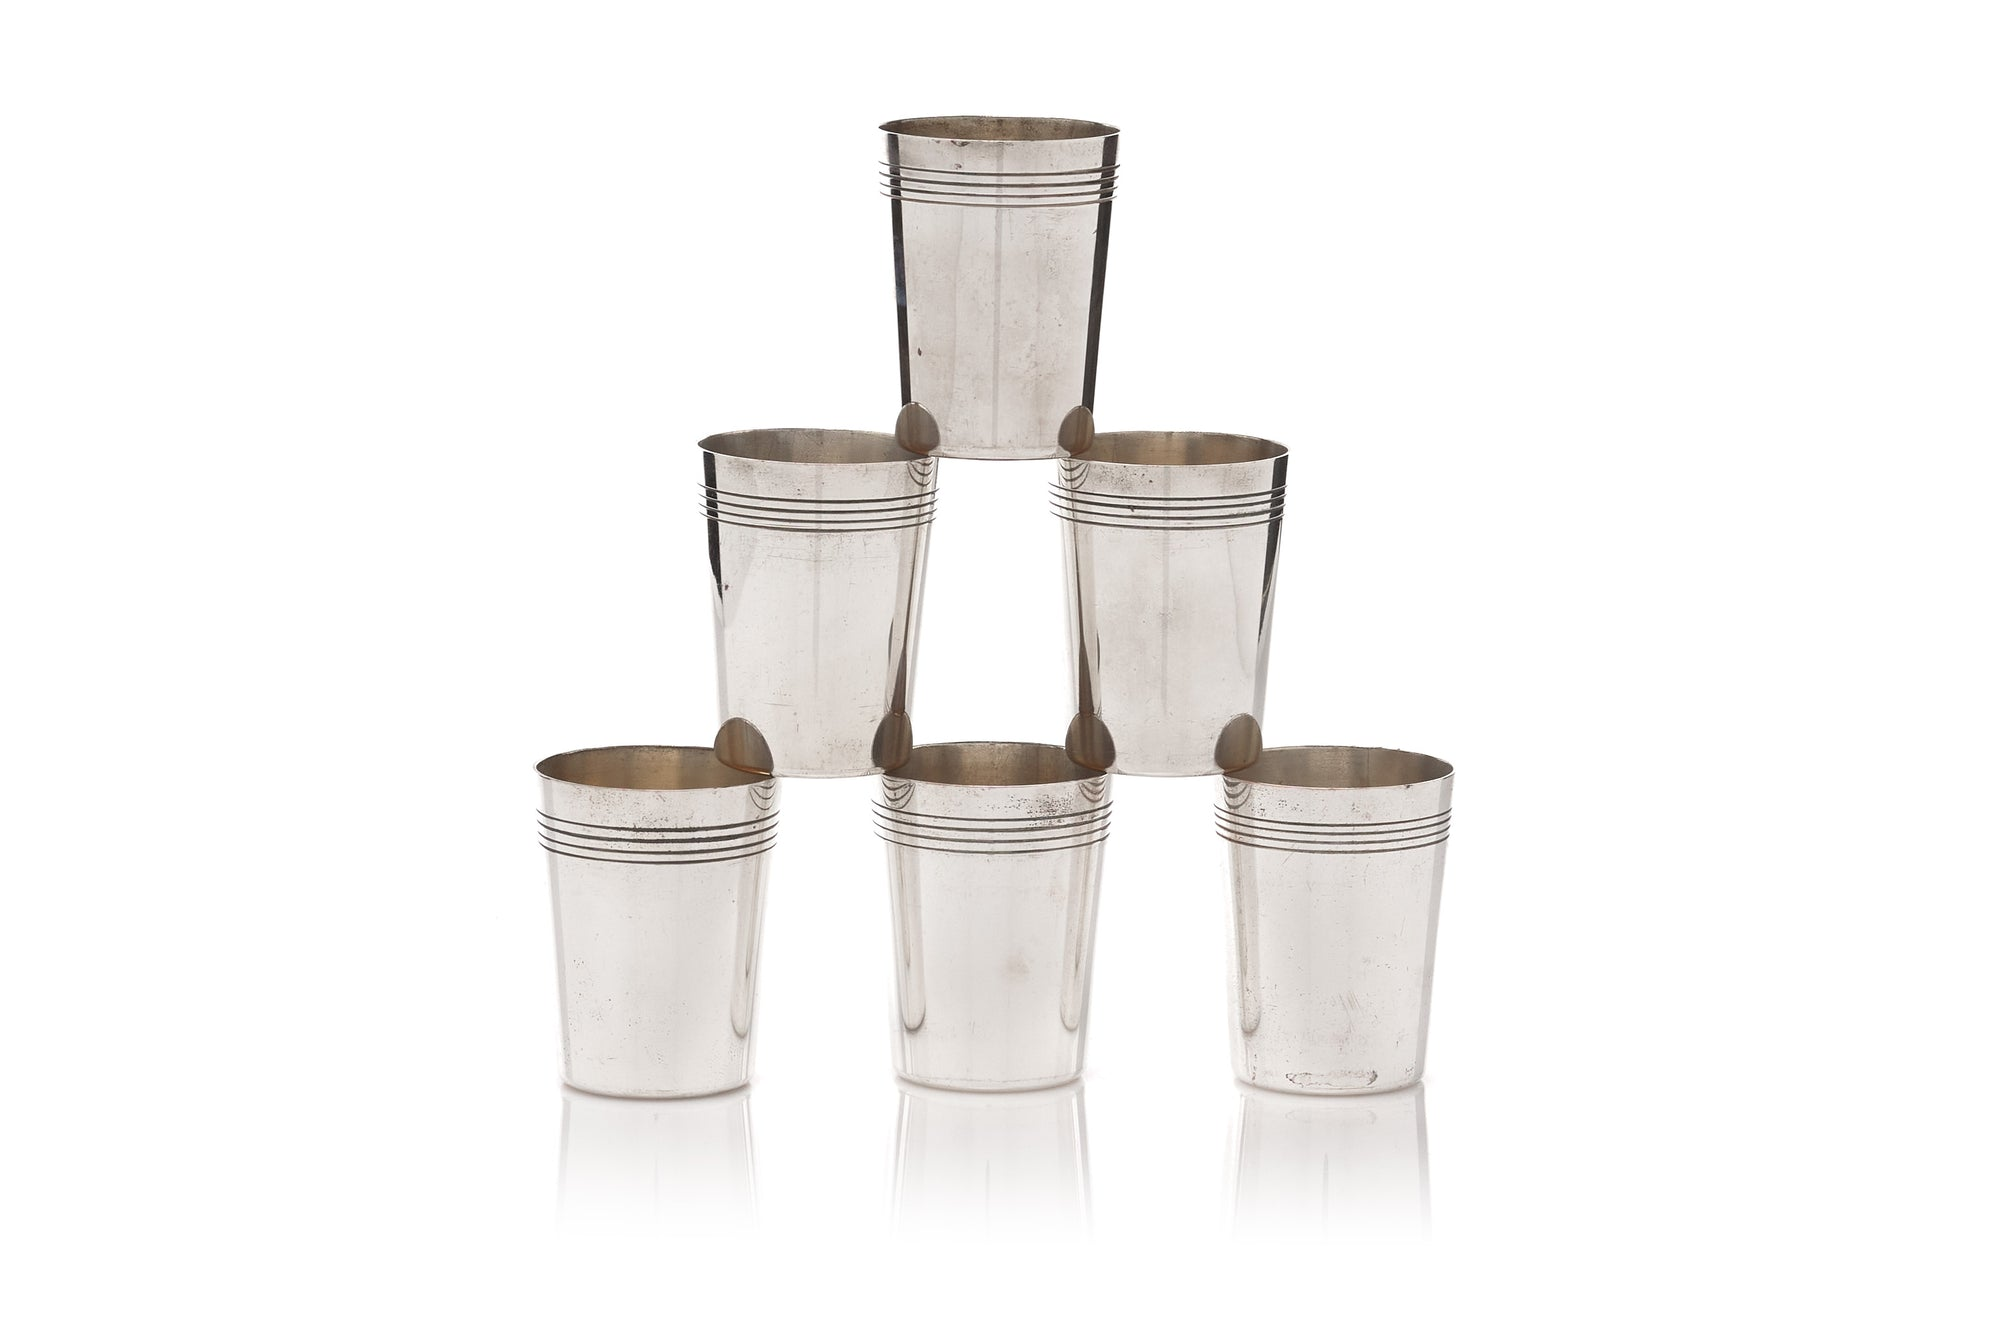 English Shot Glasses, Set of 6